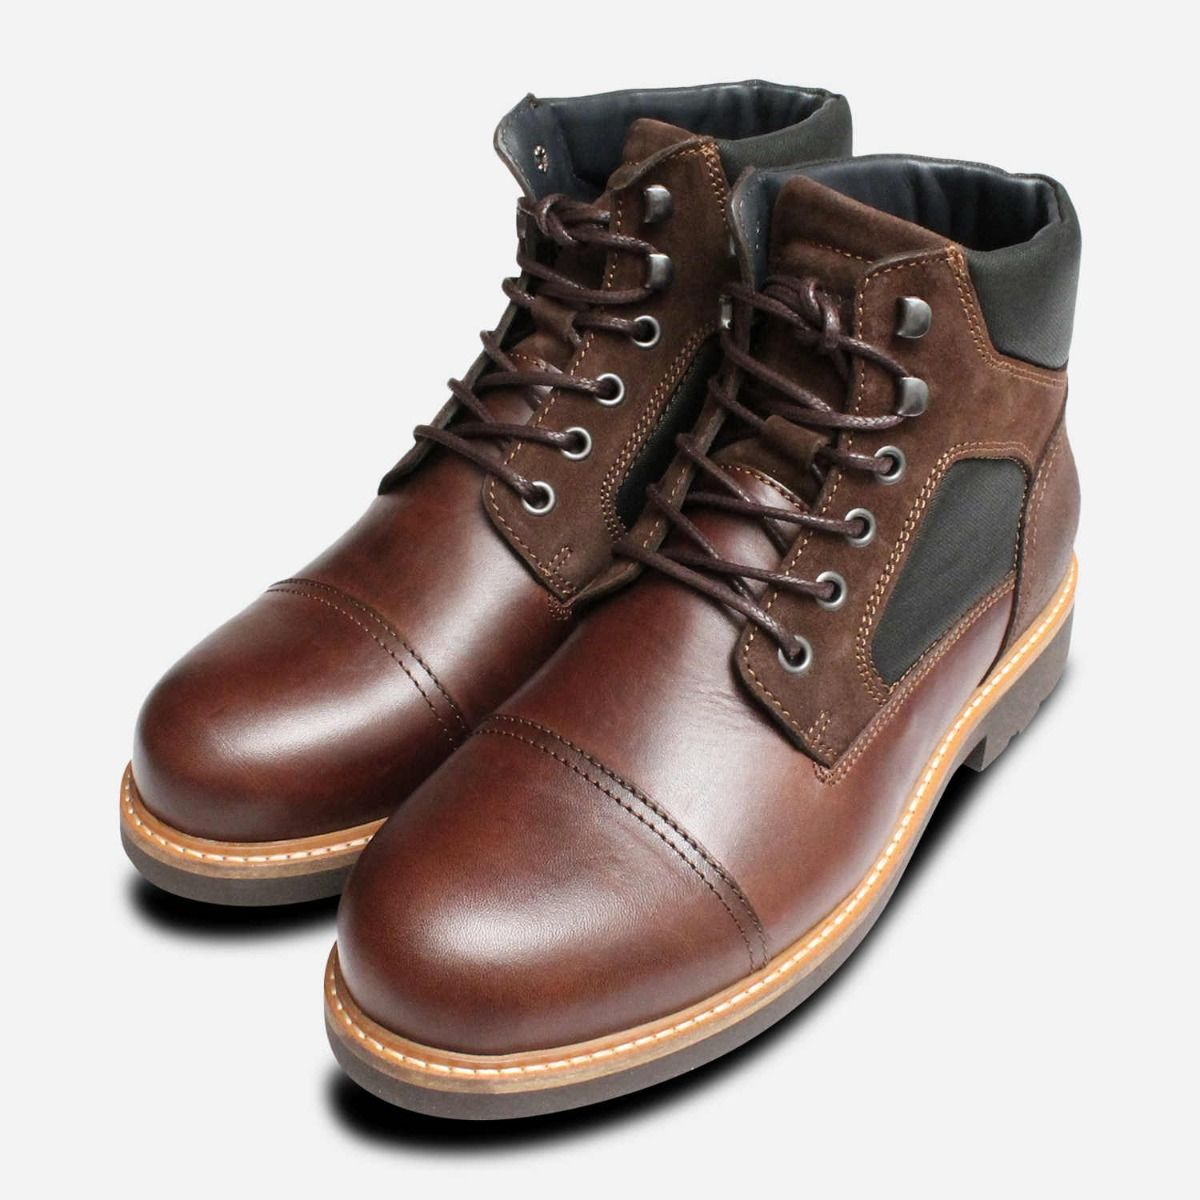 new arrival ae639 51ac2 Tommy Hilfiger Coffee Brown Leather Urban Trekking Boot